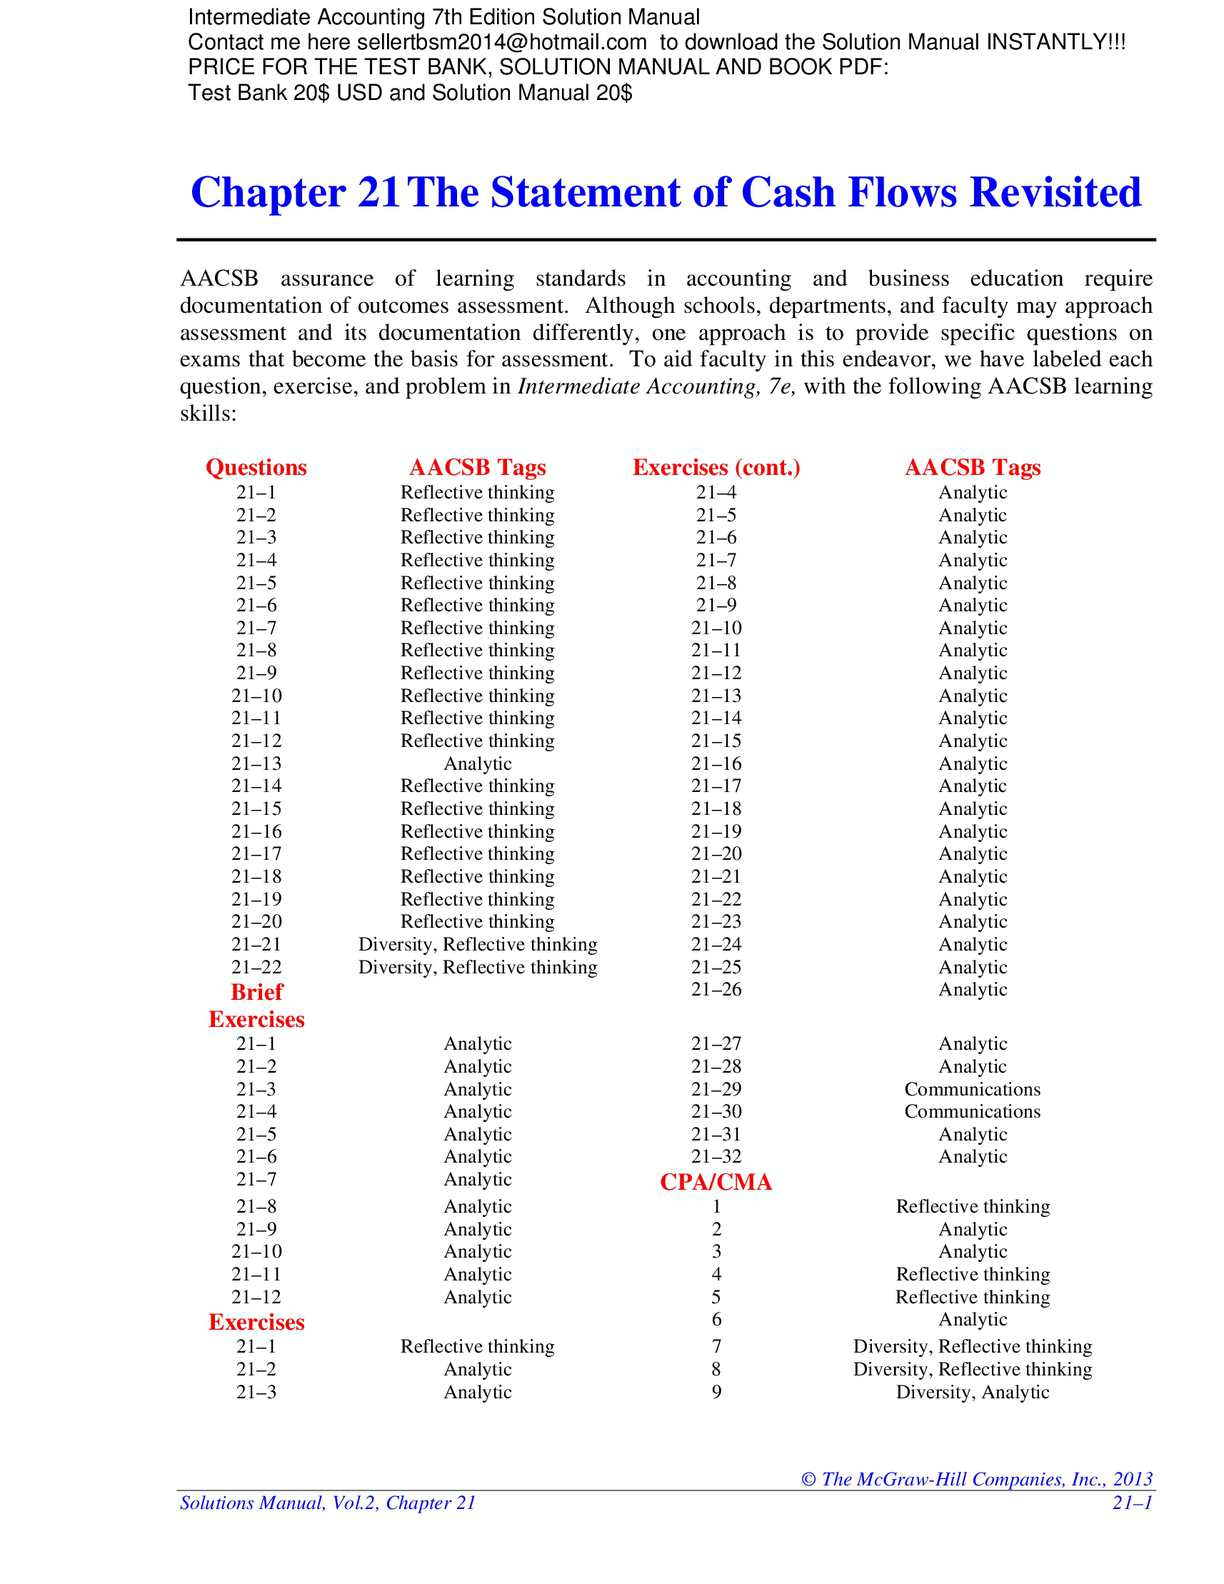 intermediate accounting ifrs edition solution manual pdf